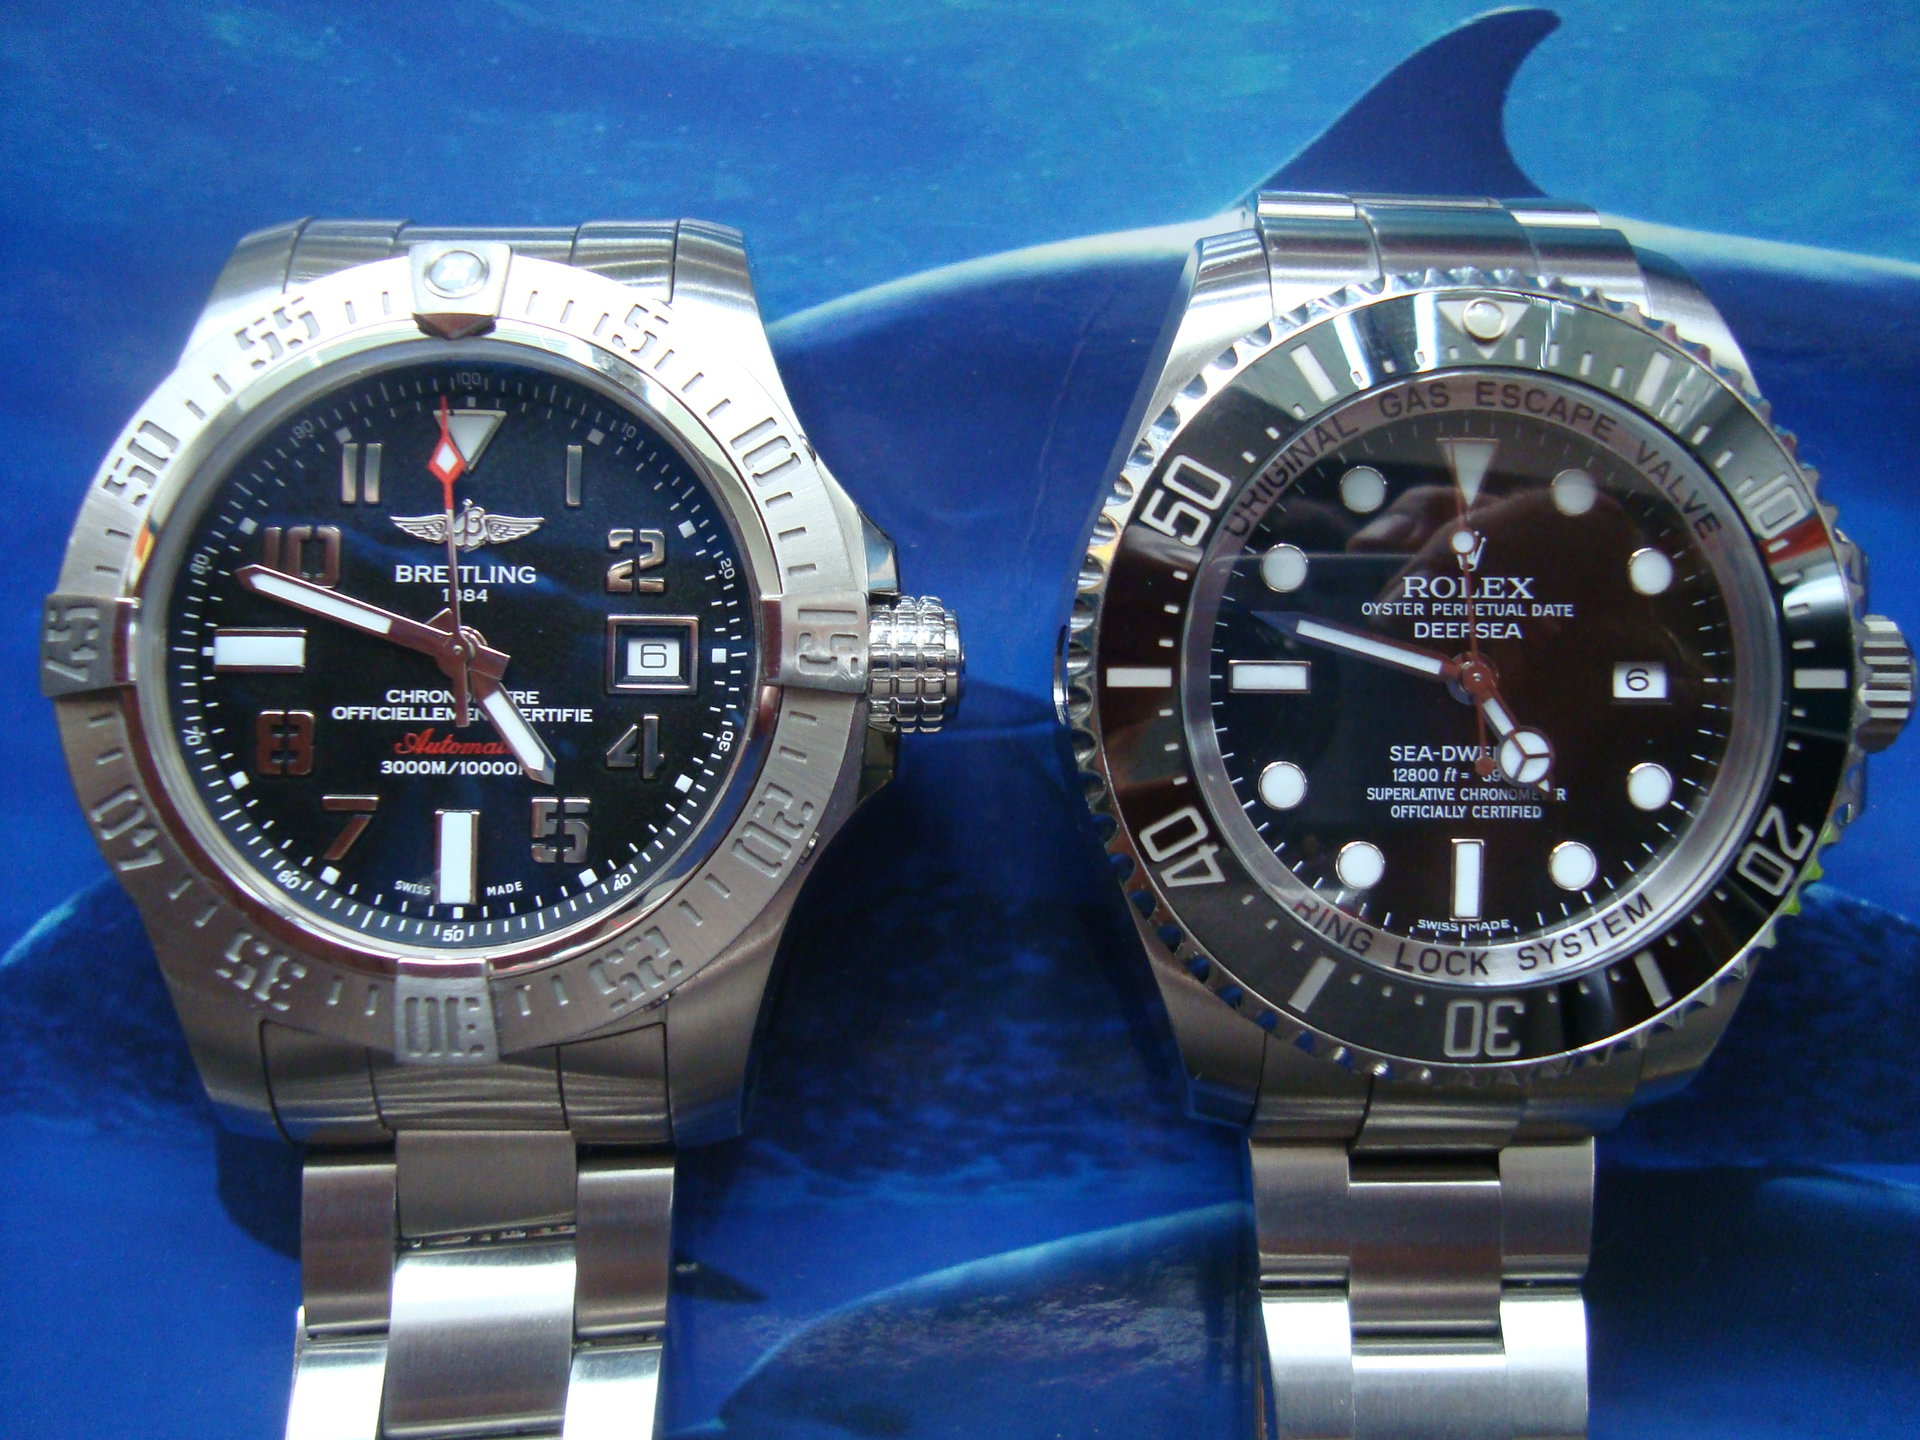 Breitling Superocean Vs Rolex Submariner